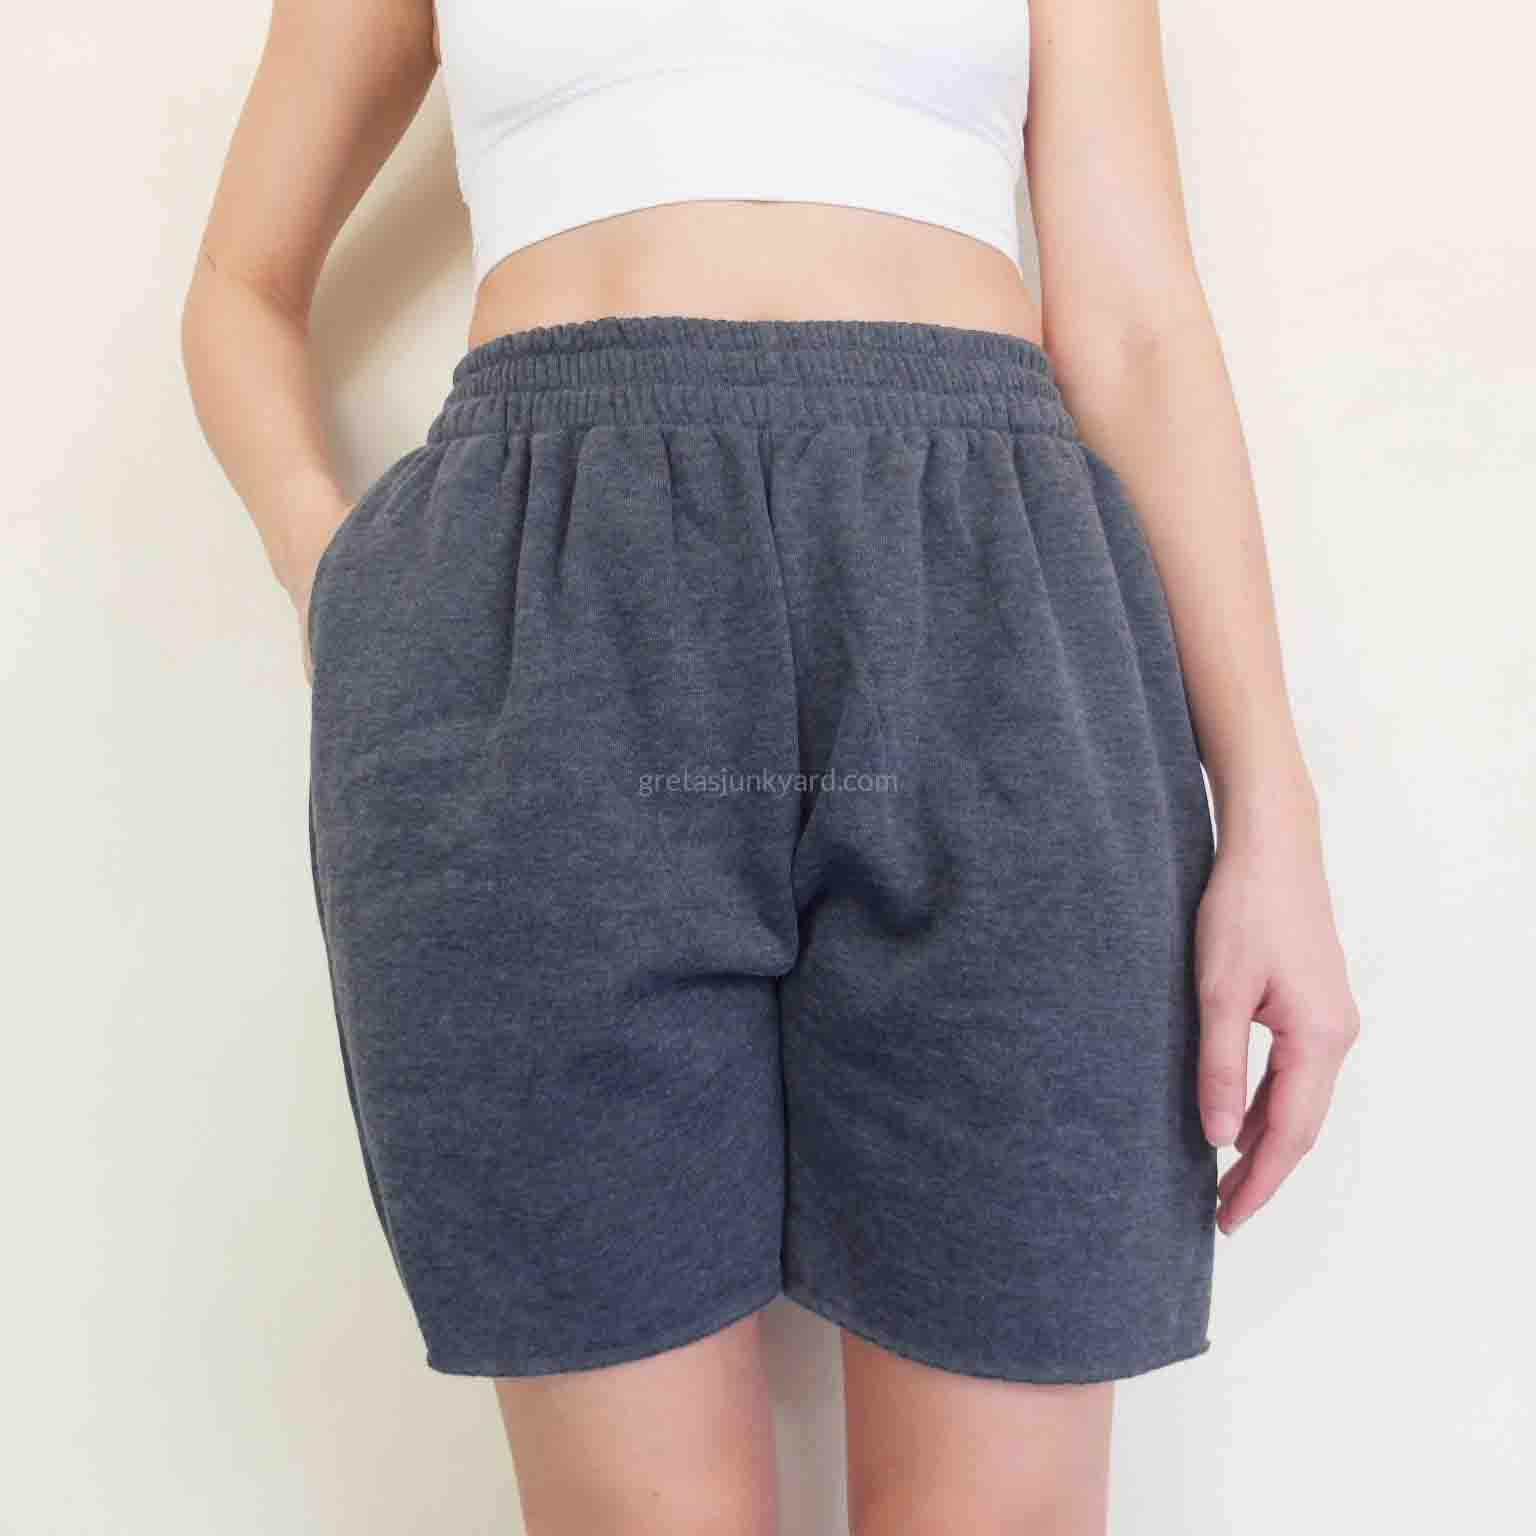 genevieve boyfriend shorts 1 - watermarked